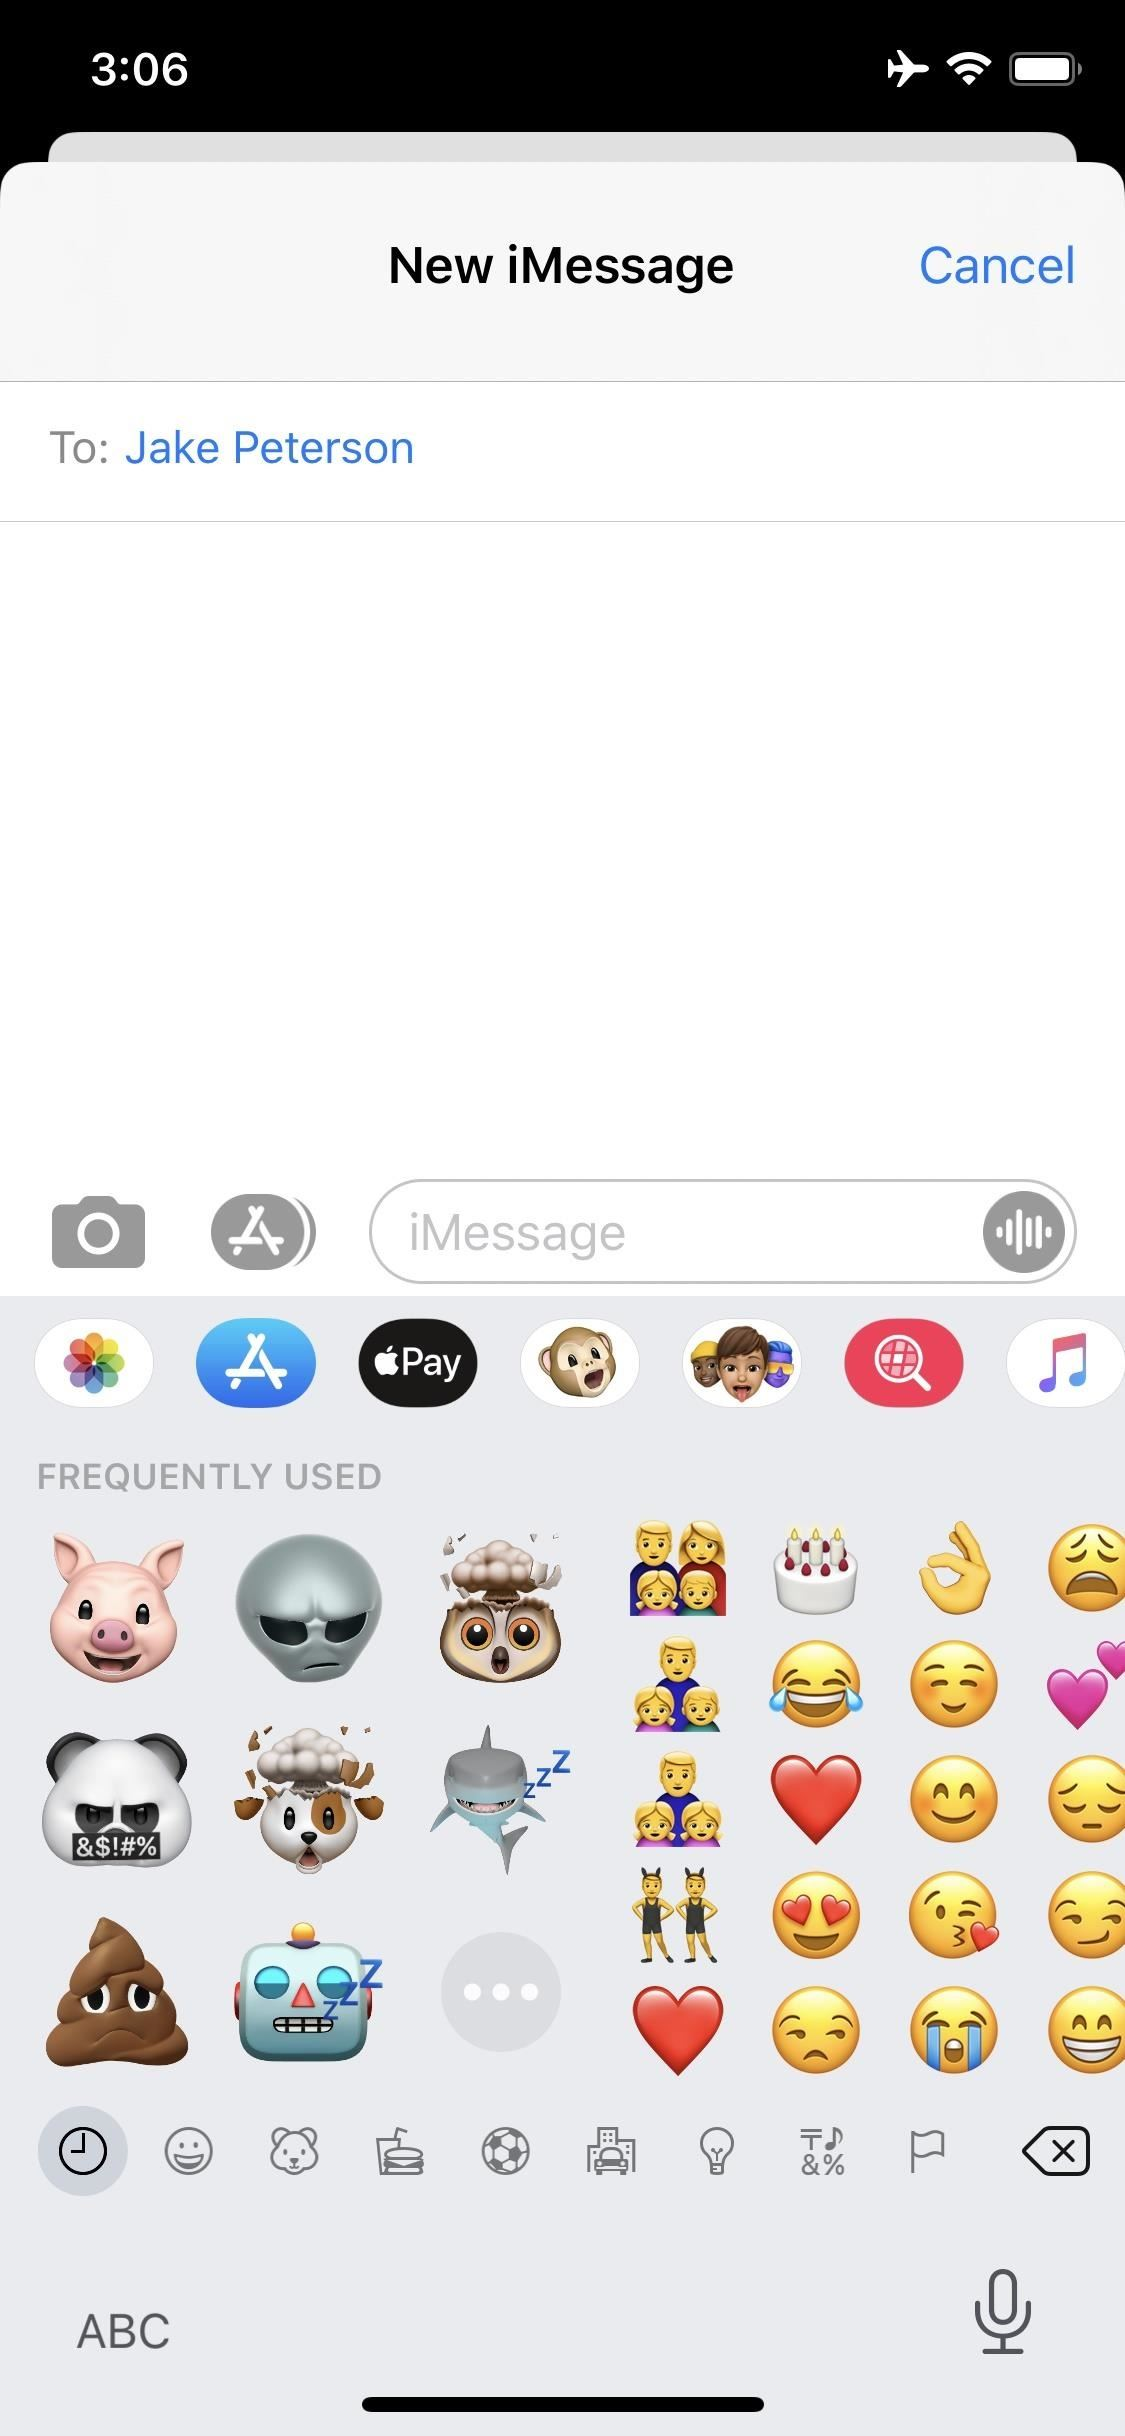 New iOS 13.3 Features & Changes You Don't Want to Miss